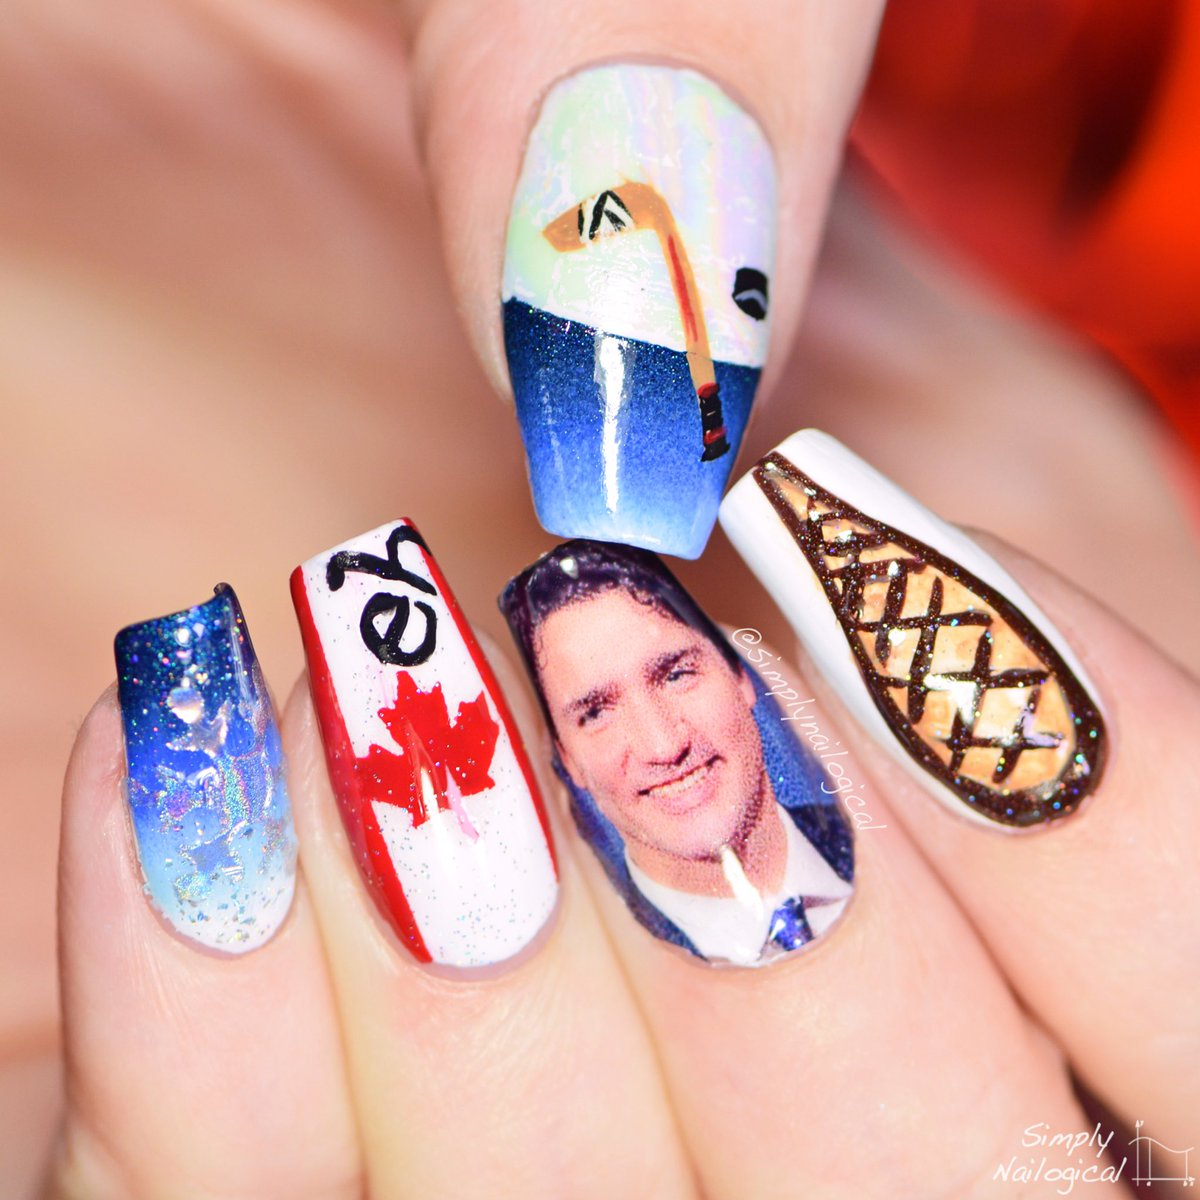 Simply Nailogical On Twitter Last Time I Put Trump My Nails So It S Only Fair The Leader Of Own Country Too